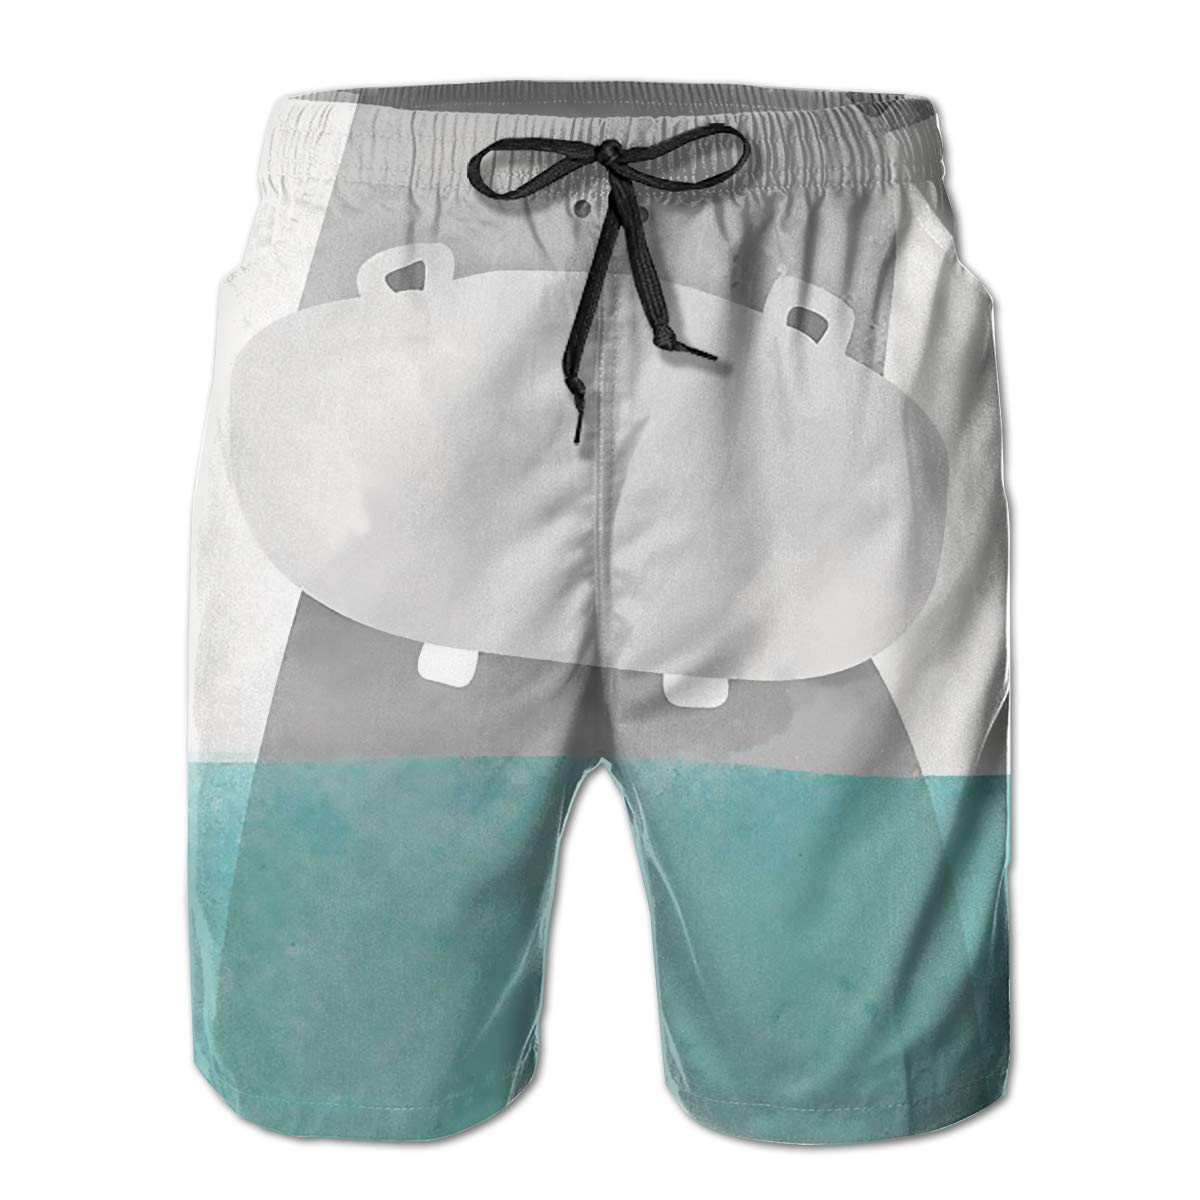 Cute Hippo Mens Summer Surf Board Shorts Quick Dry Pants with Pockets M White